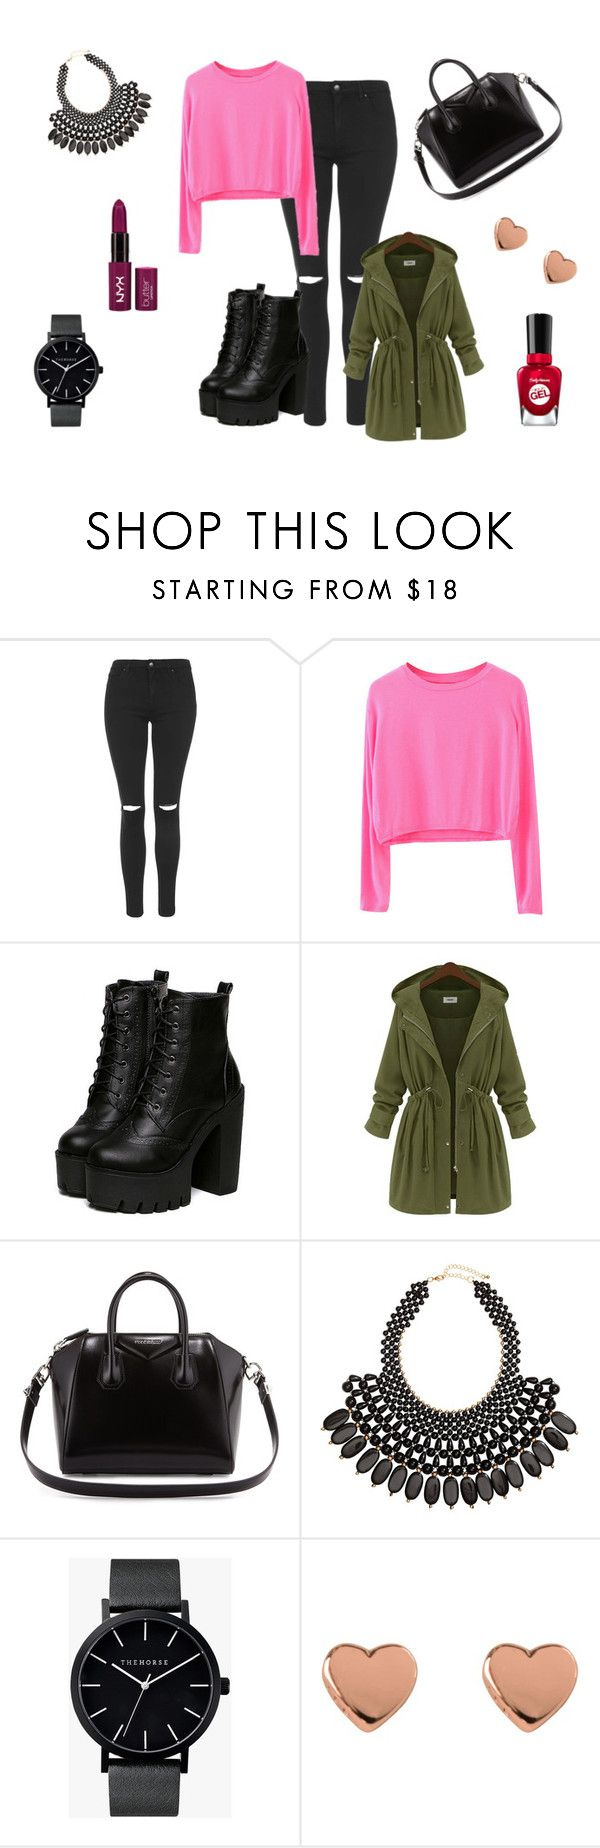 """""""So i think I 'm beautiful today"""" by dagusia112 on Polyvore featuring moda, Topshop, Givenchy, H&M, The Horse, Ted Baker i Sally Hansen"""